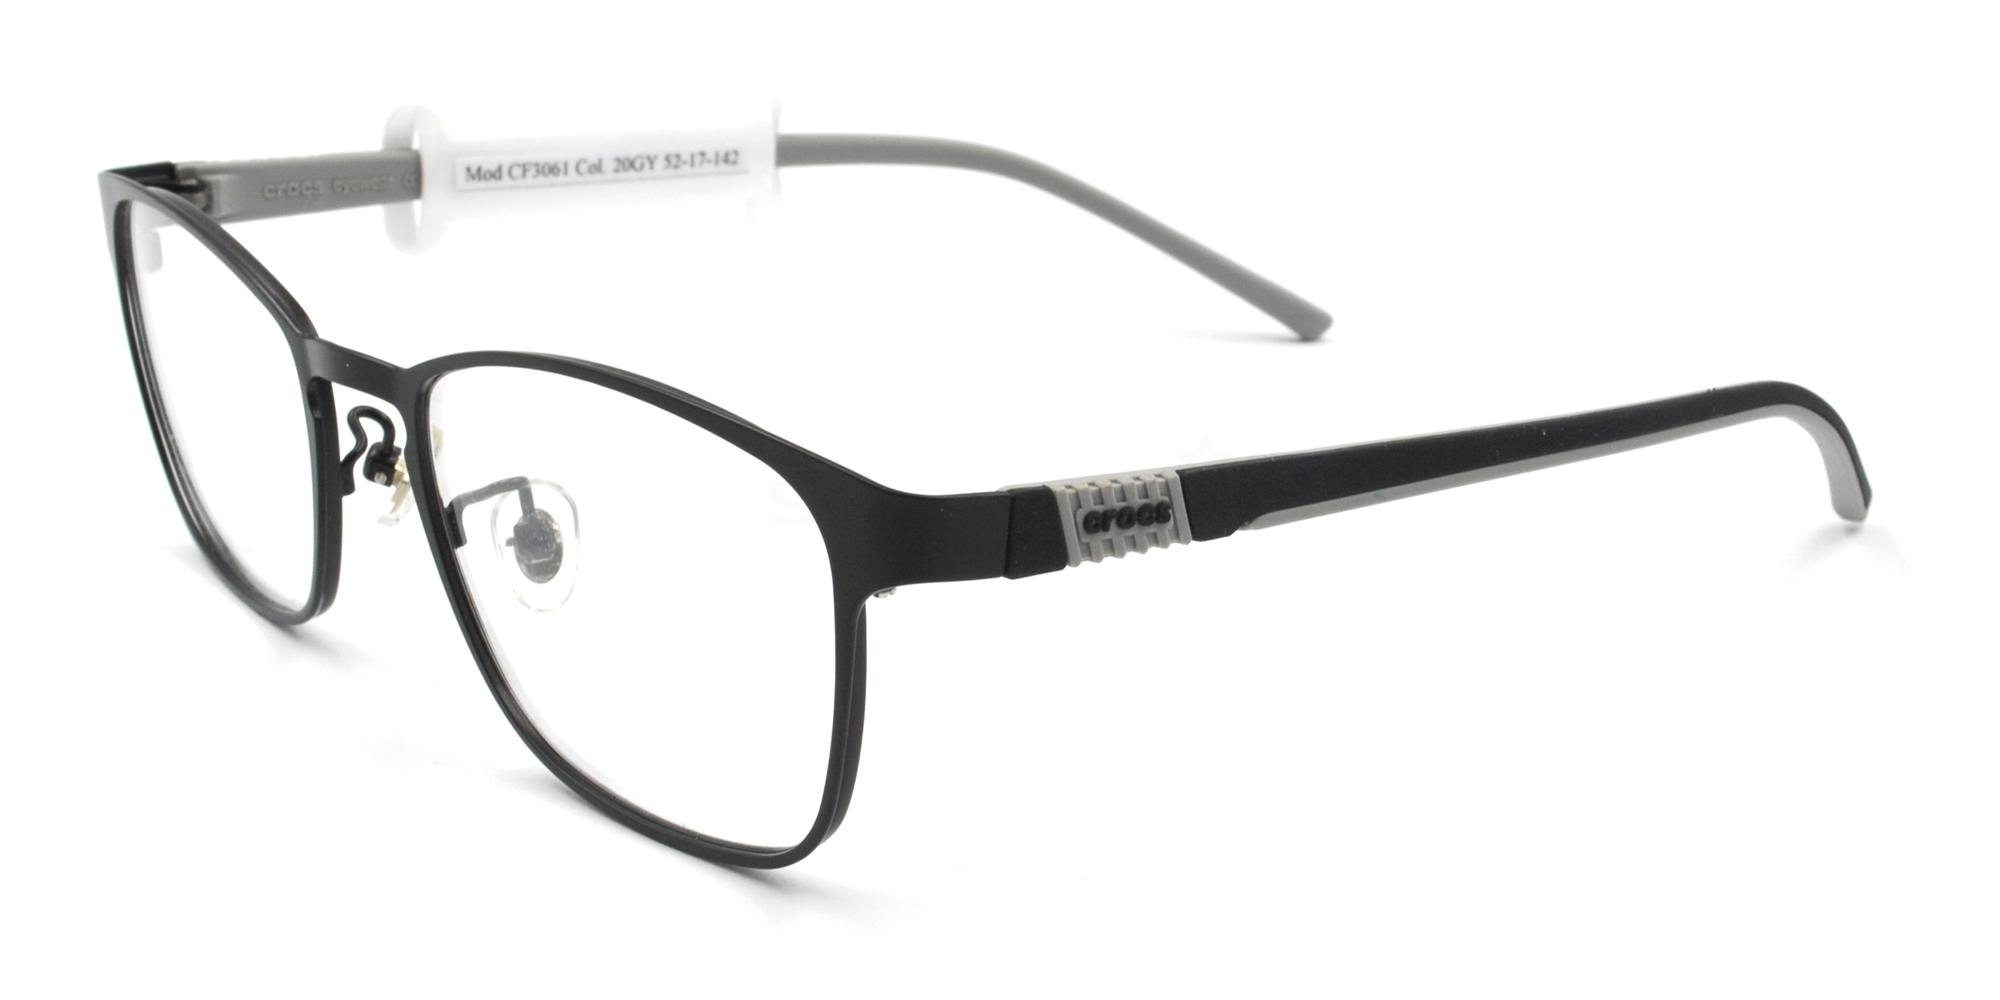 20GY CF3061 Glasses, Crocs Eyewear